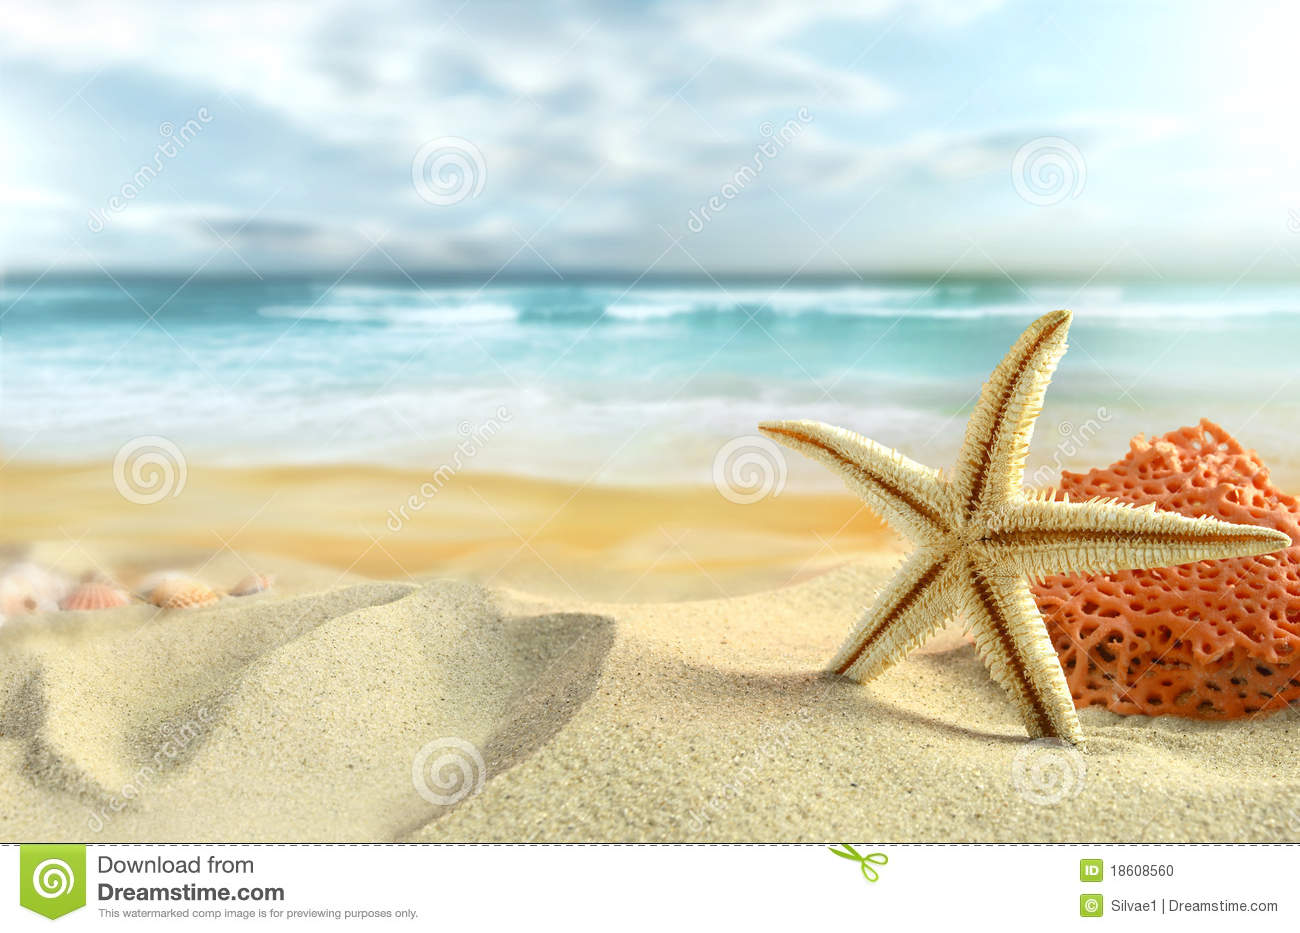 Starfish Stock Photos - Royalty Free Images - Dreamstime